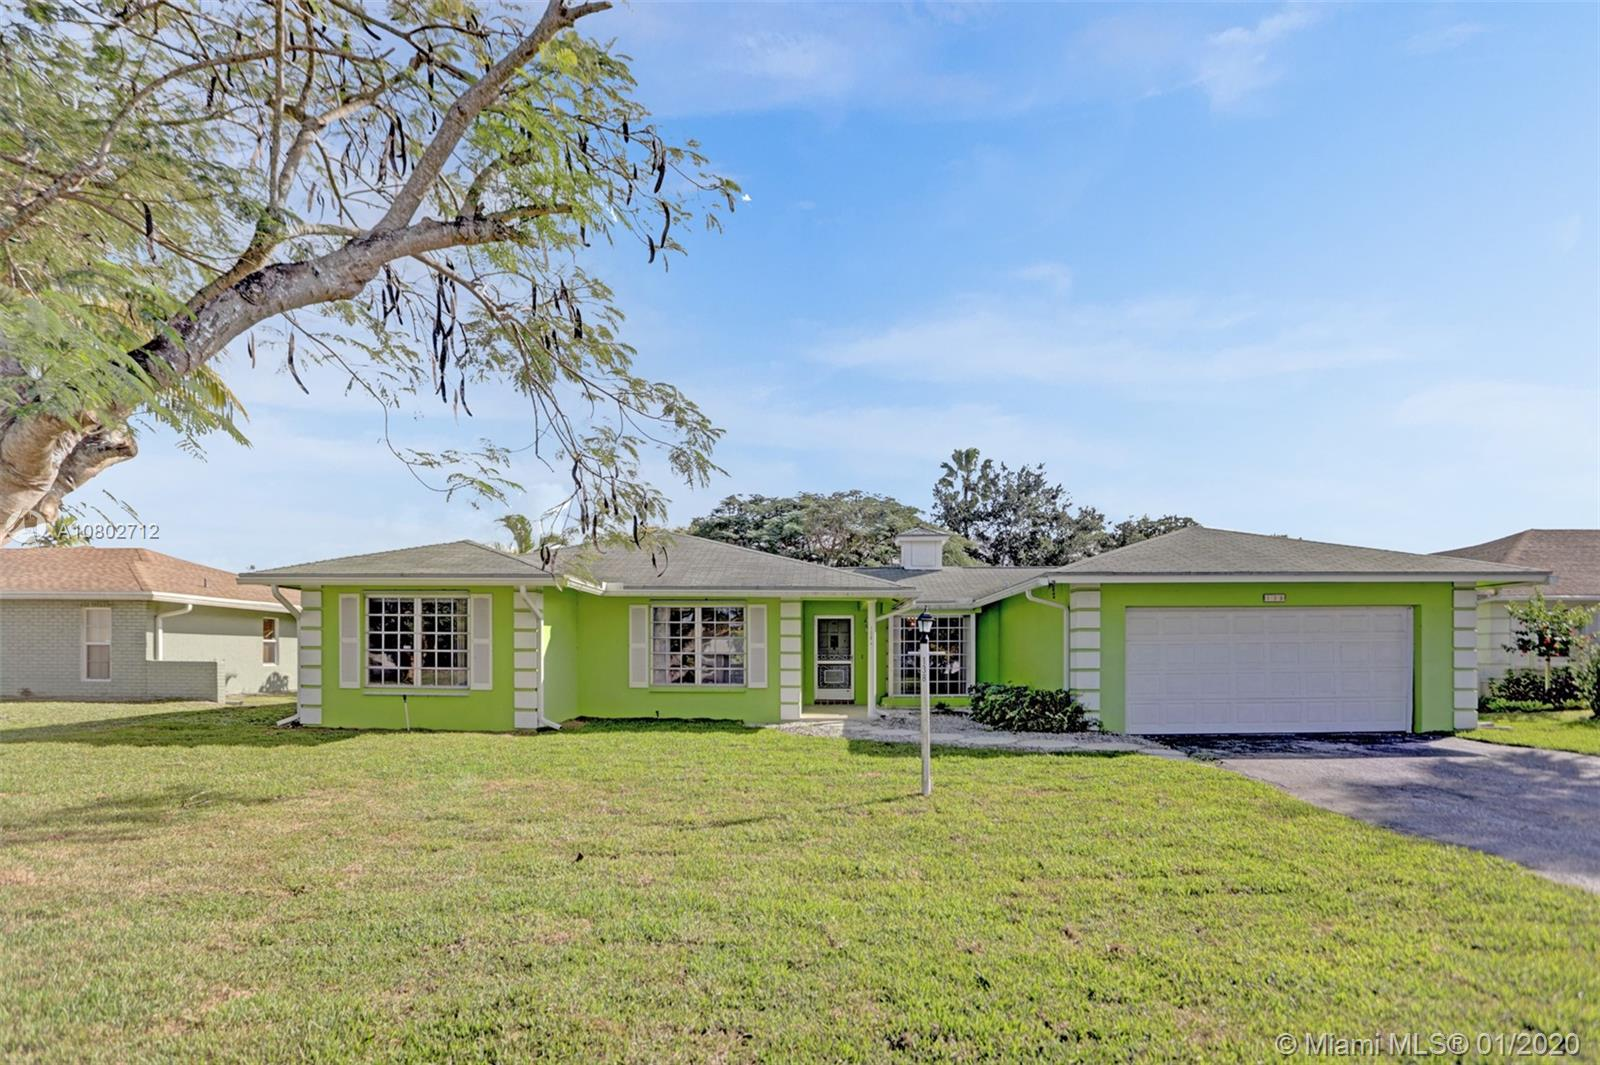 138 Meadowlark Dr, Royal Palm Beach, FL 33411